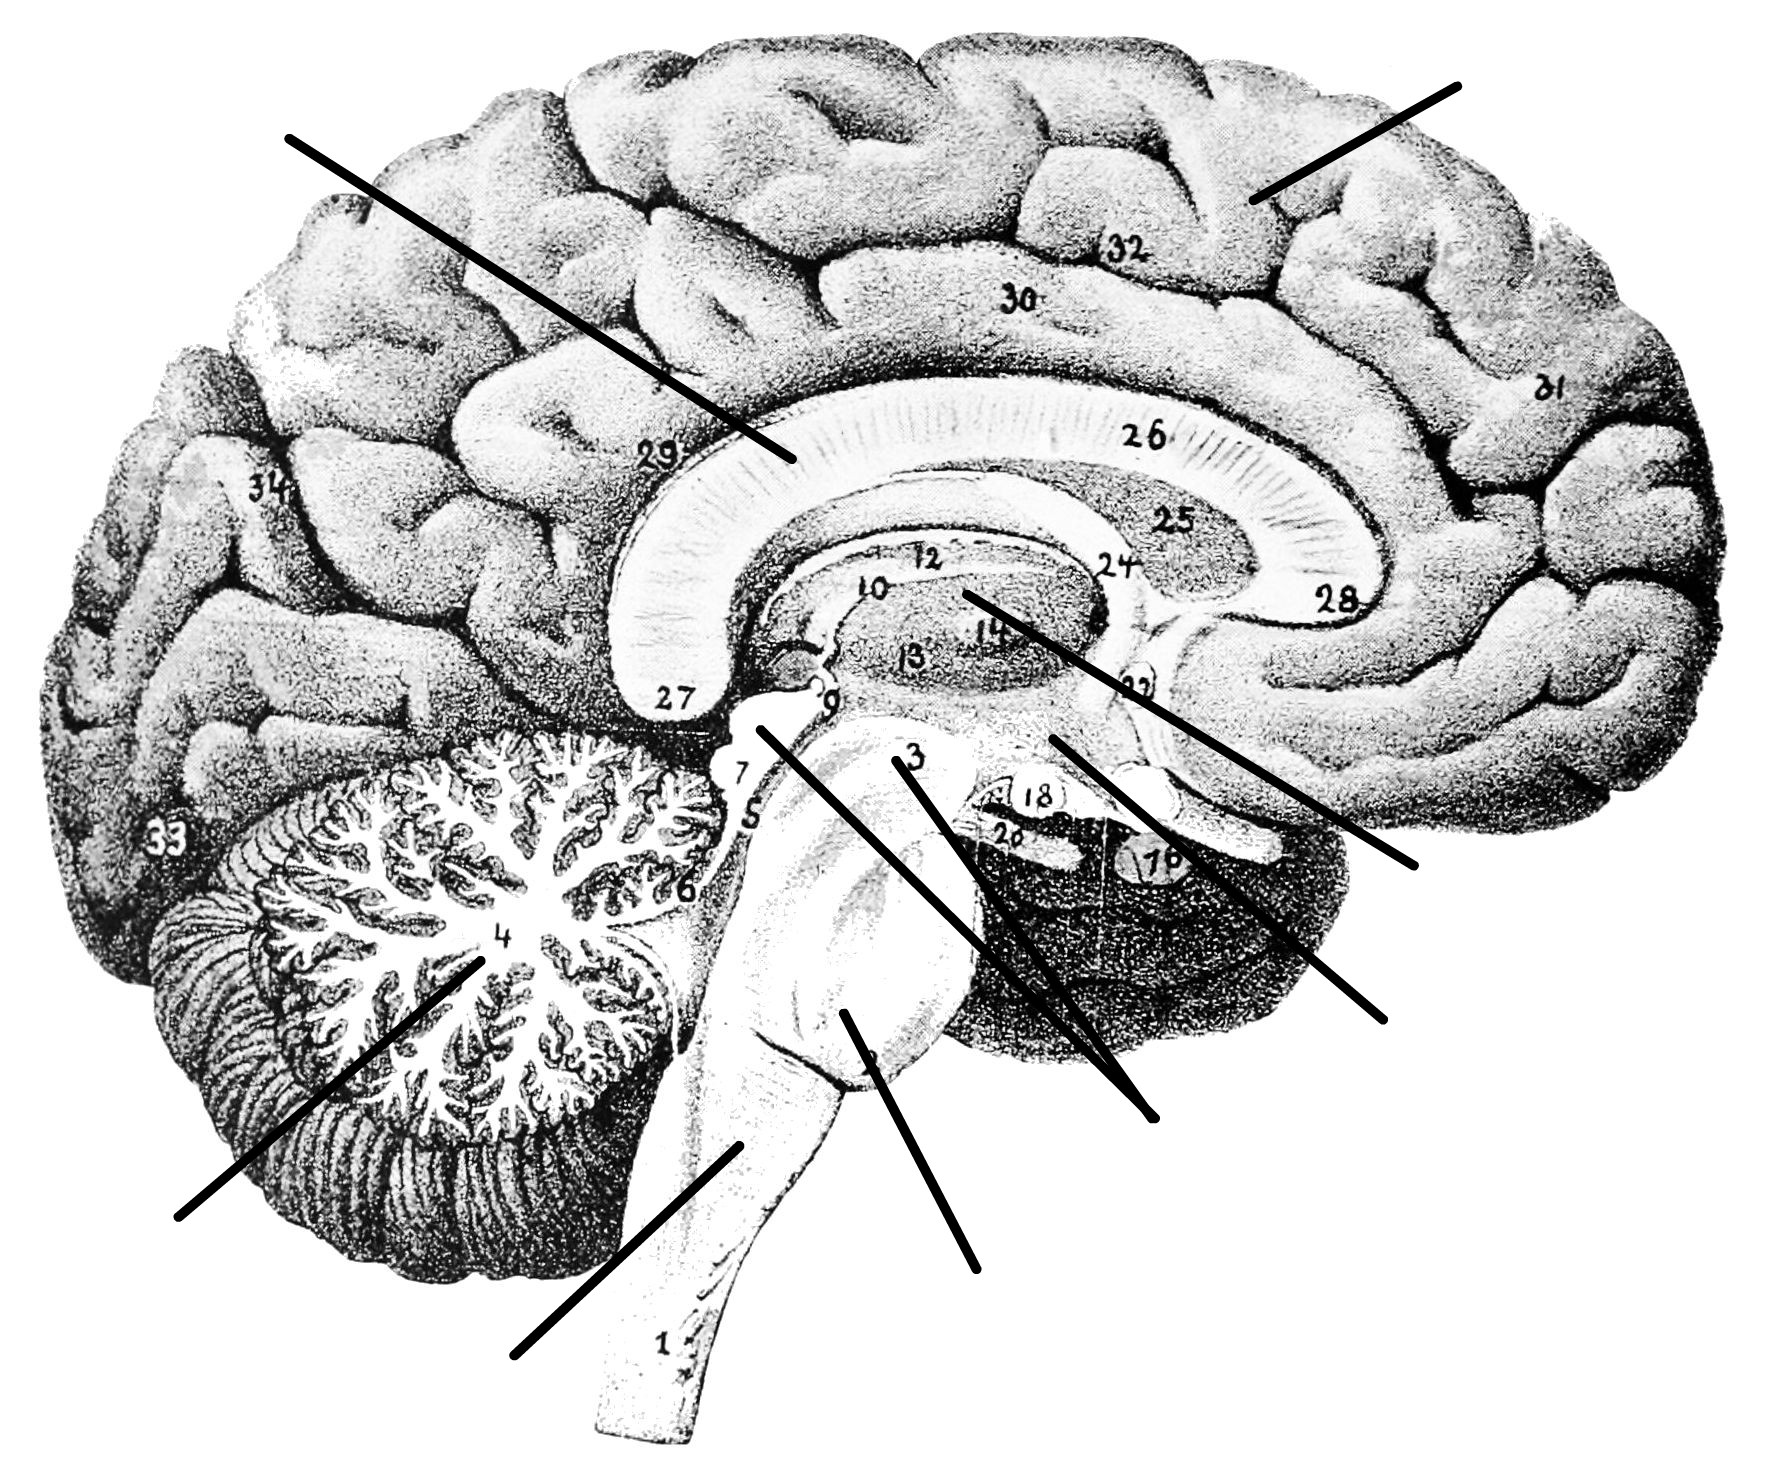 Blank Brain Diagram Sagittal